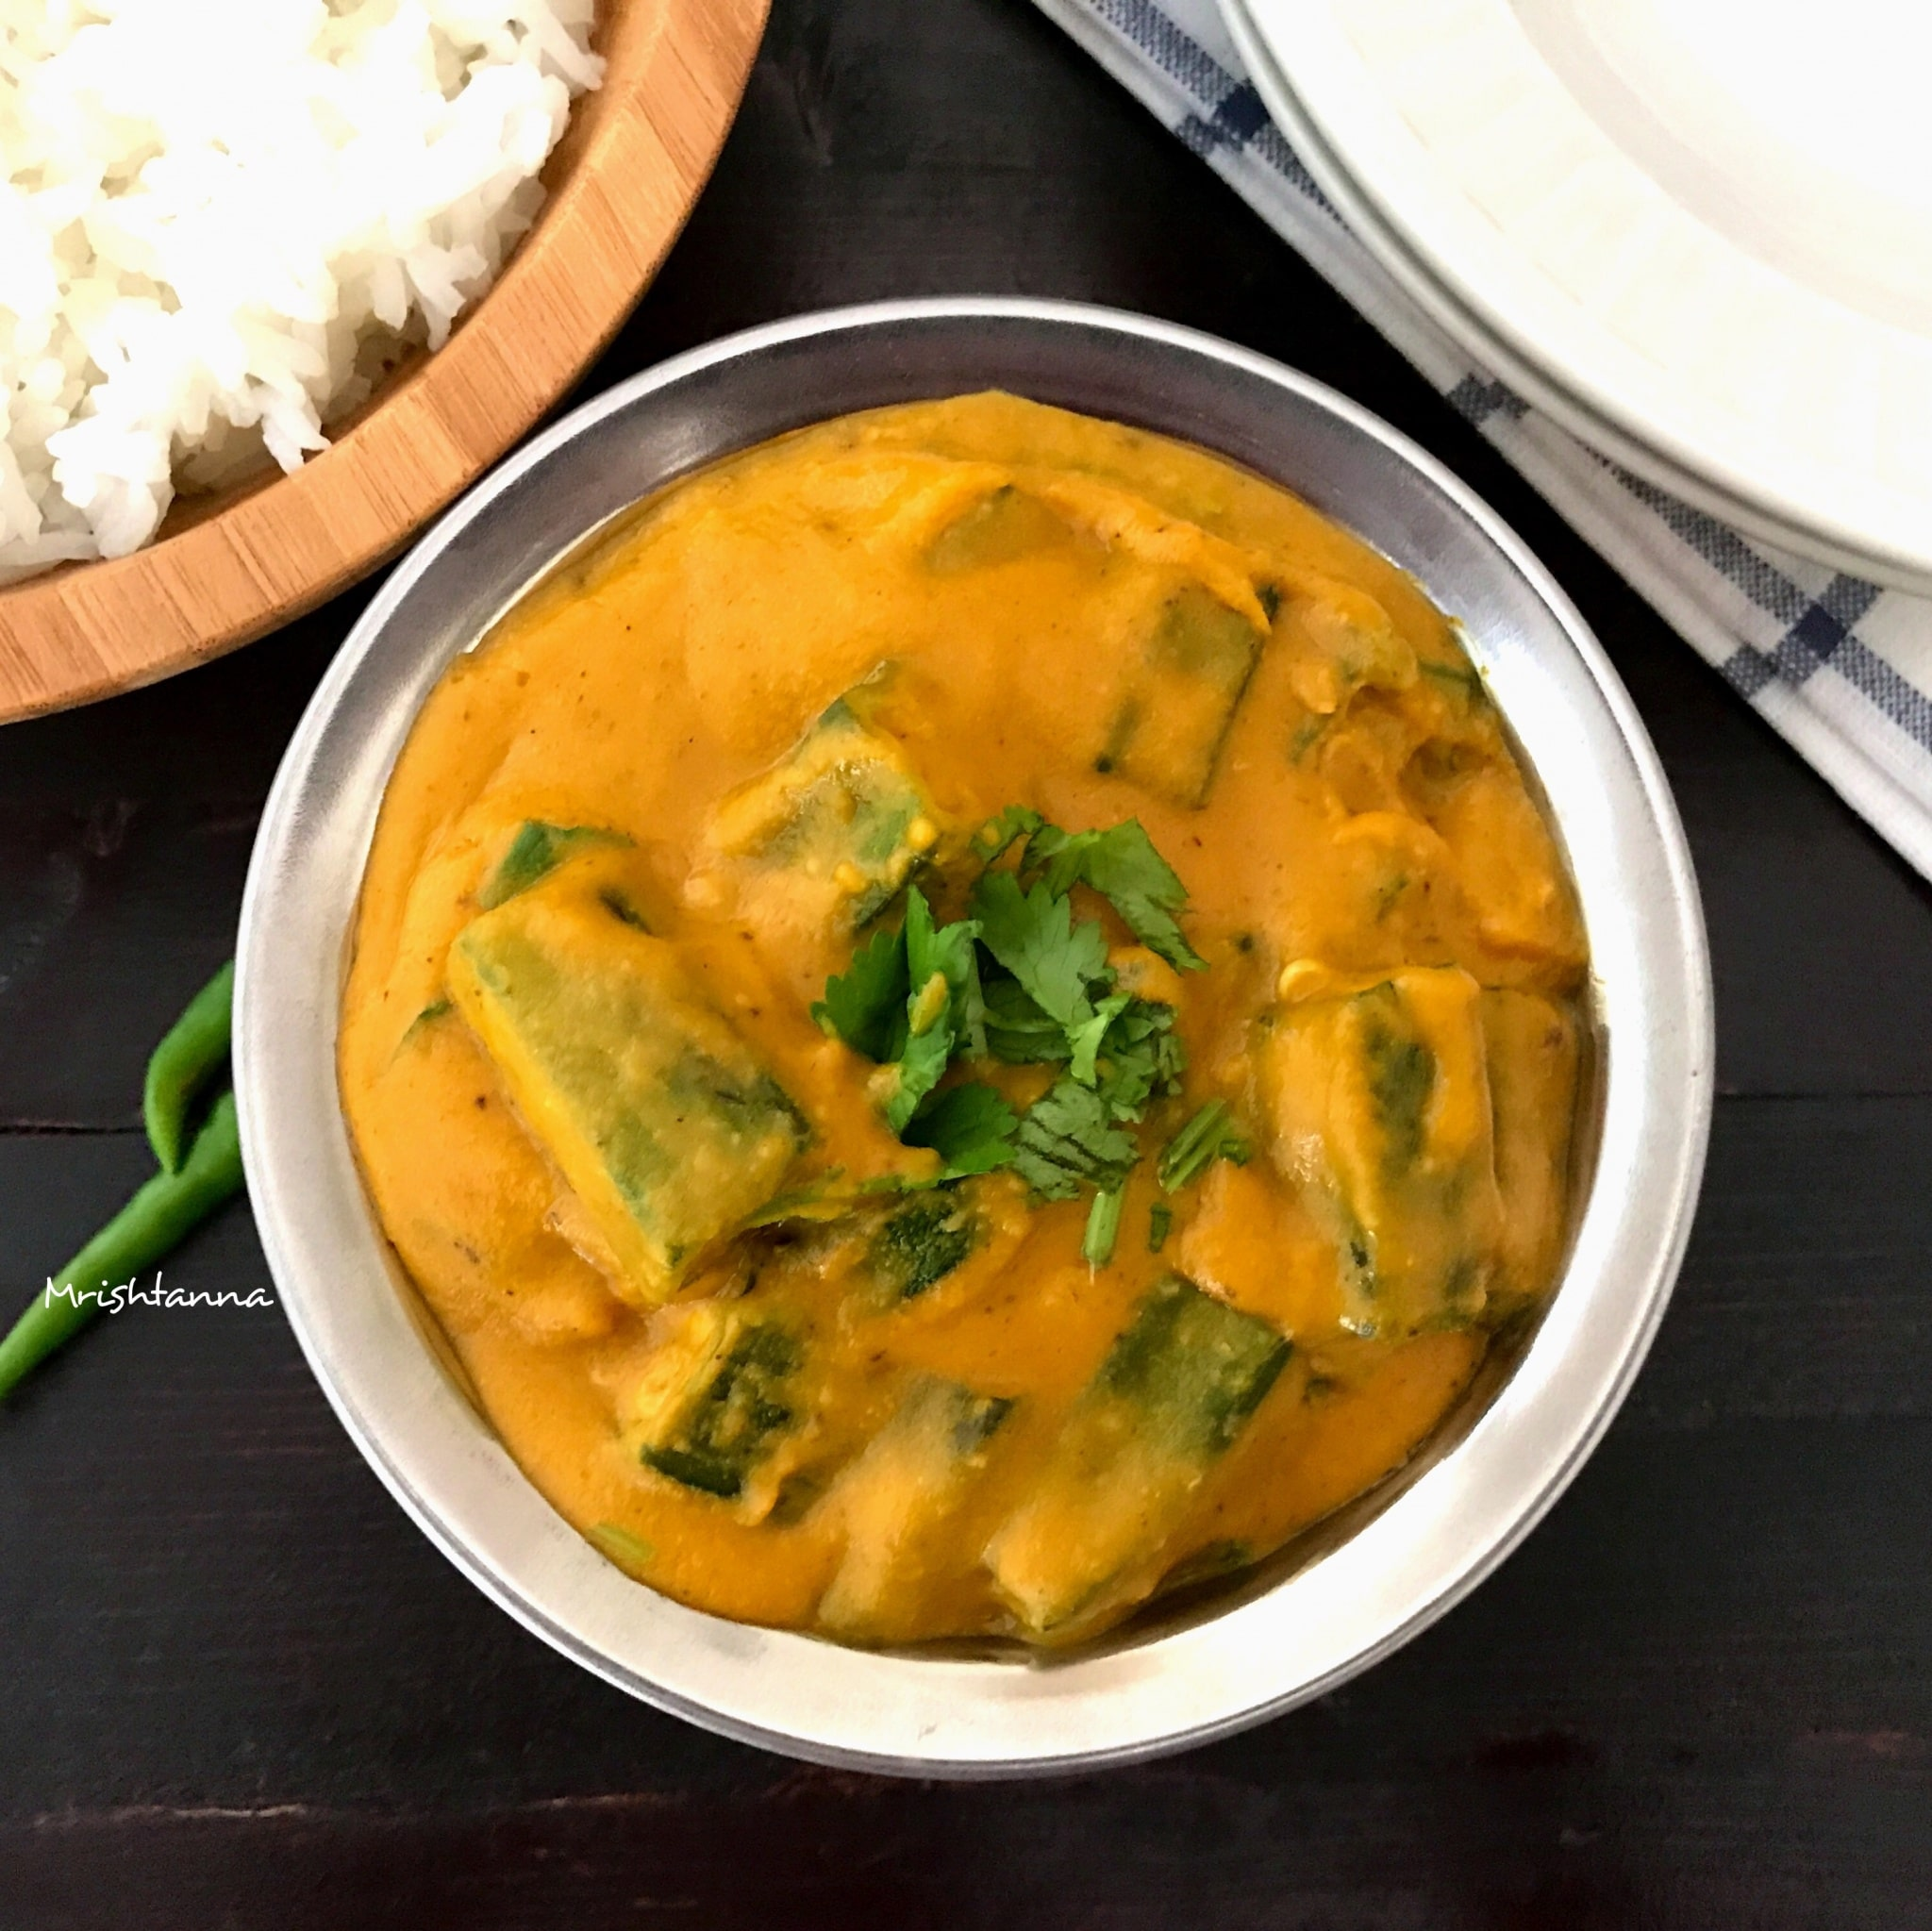 A bowl of bhindi masala is on the black table